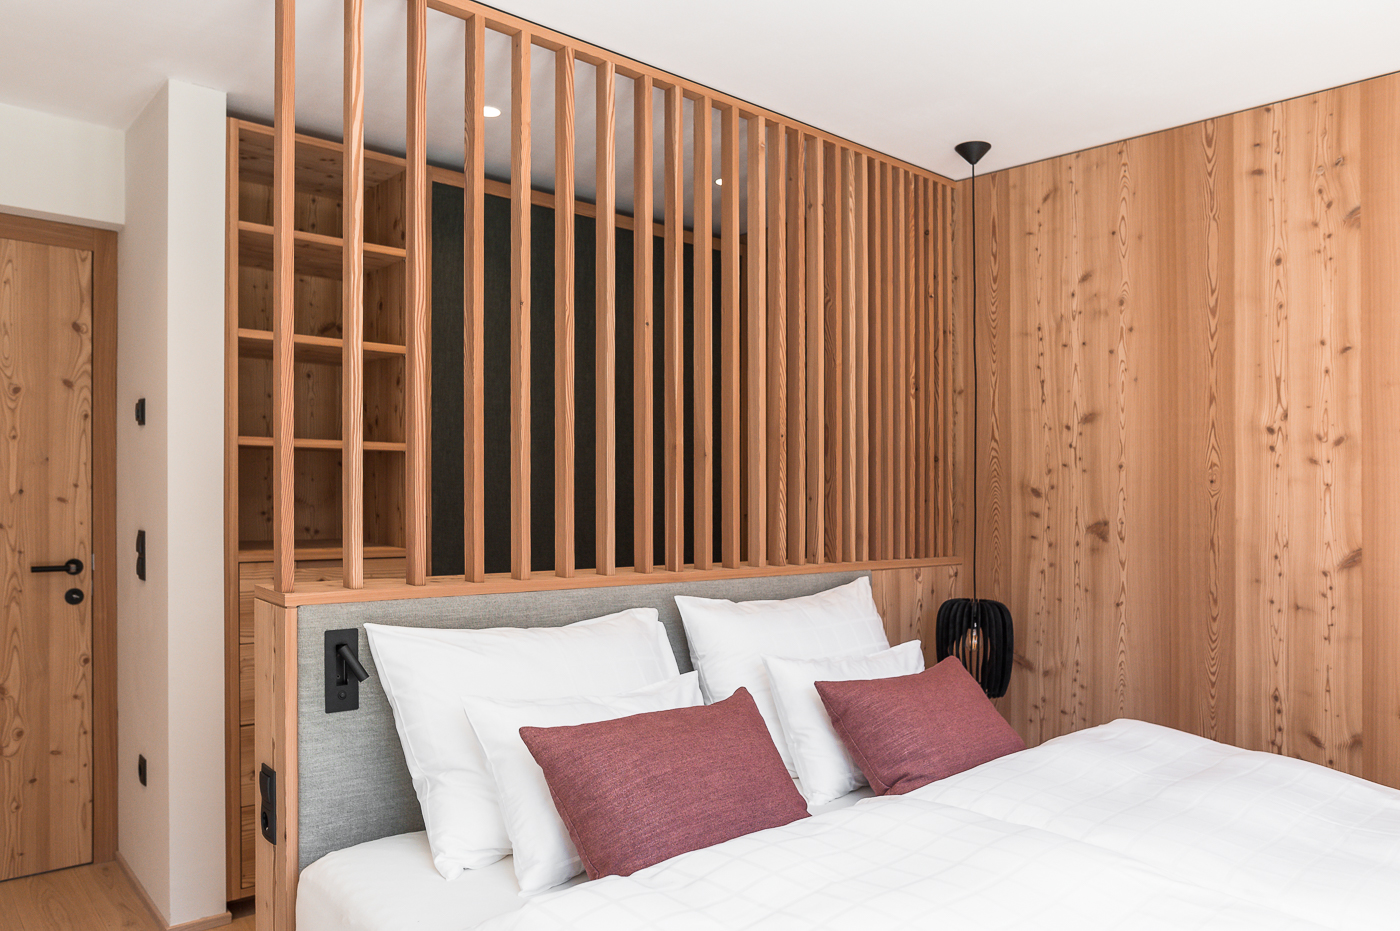 ©SUNNSEIT APARTMENTS - KUPPELWIES VALDULTIMO | PROJECT: BIQUADRA